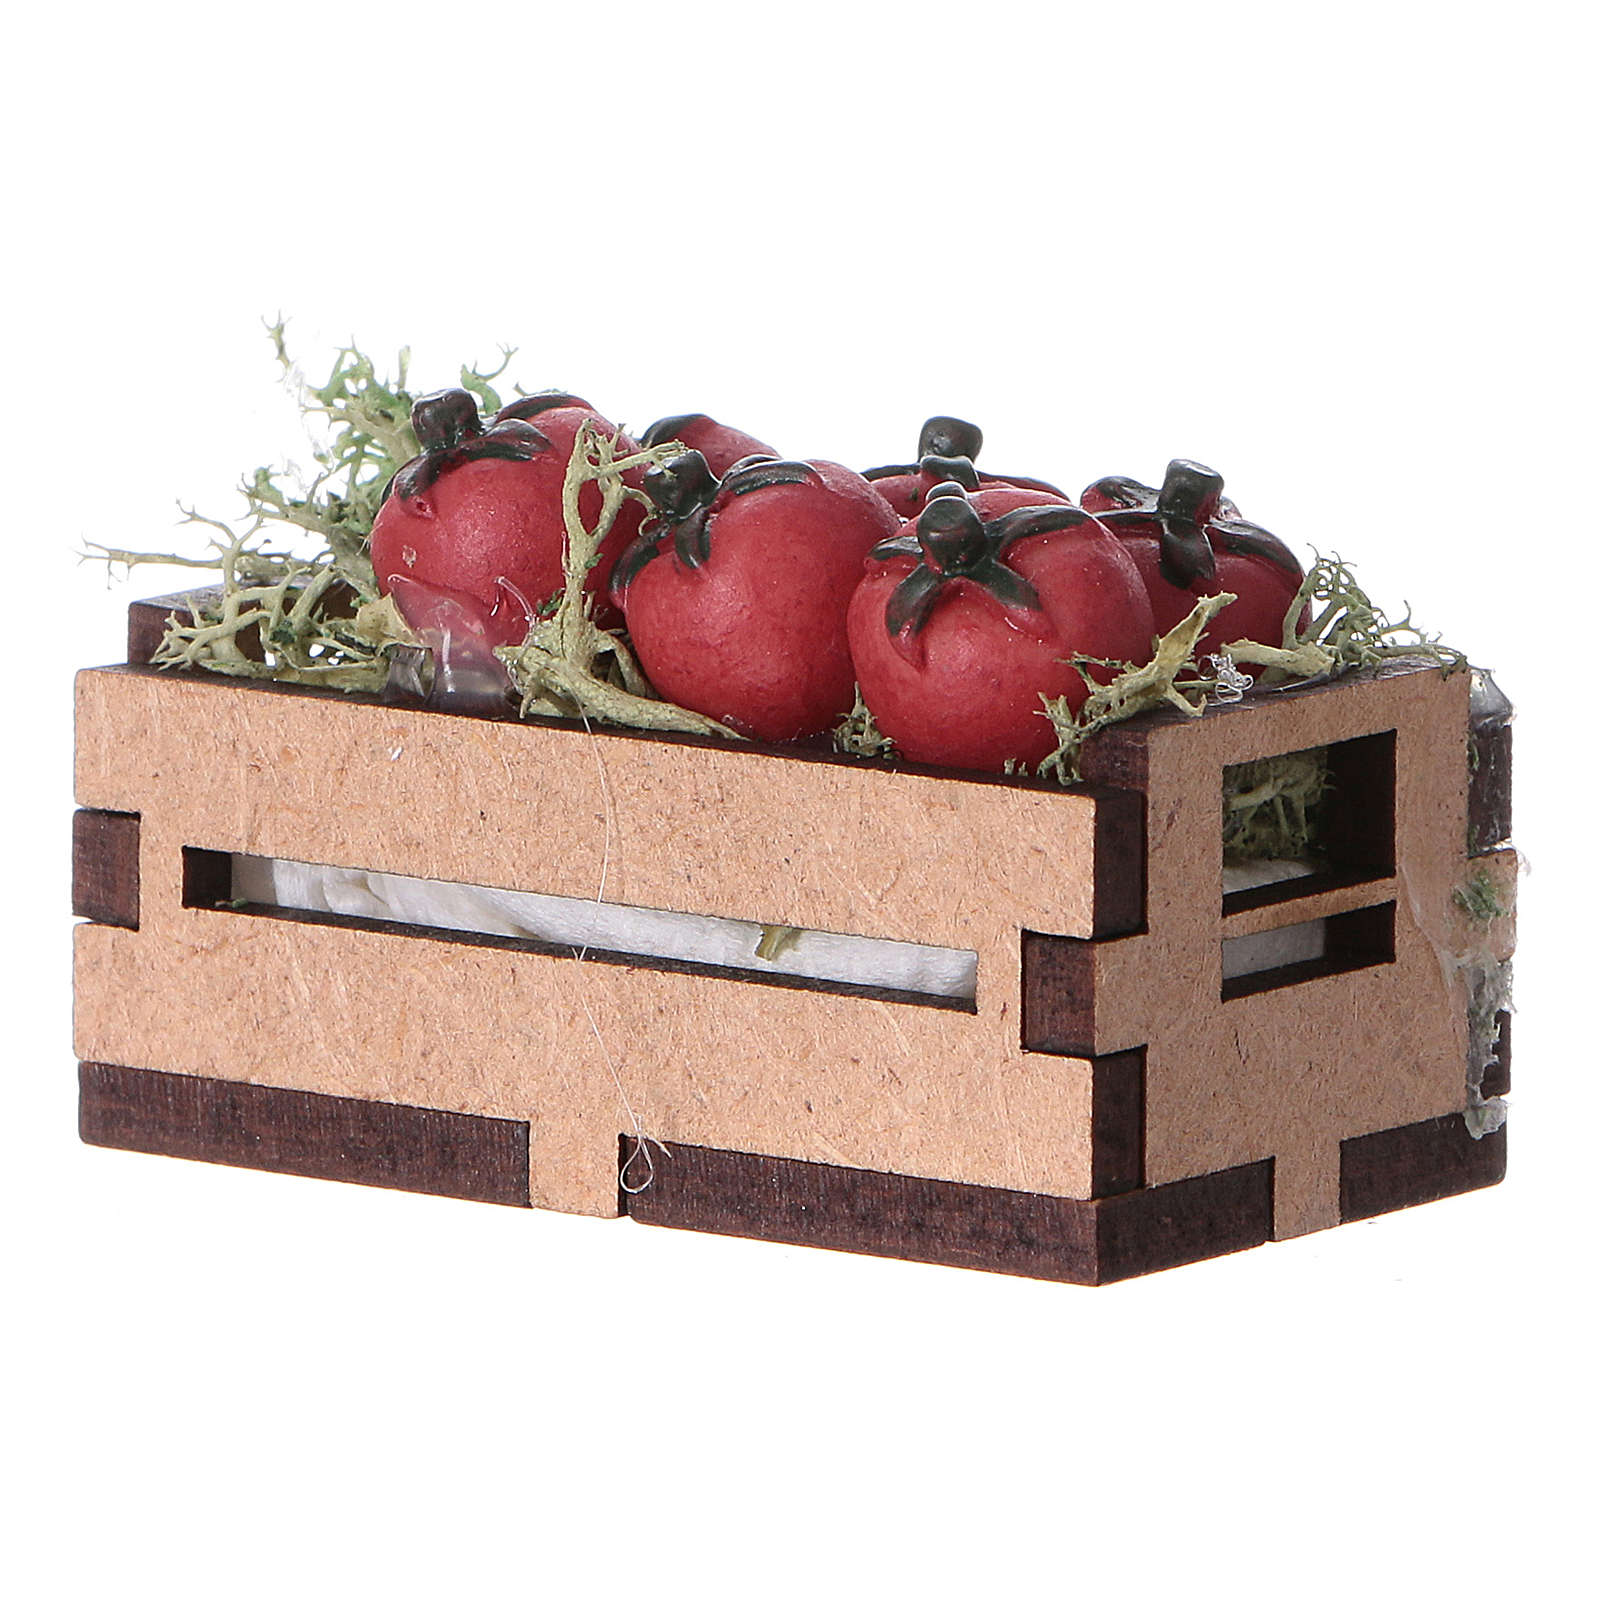 Box with tomatoes 5x5x5 cm 4